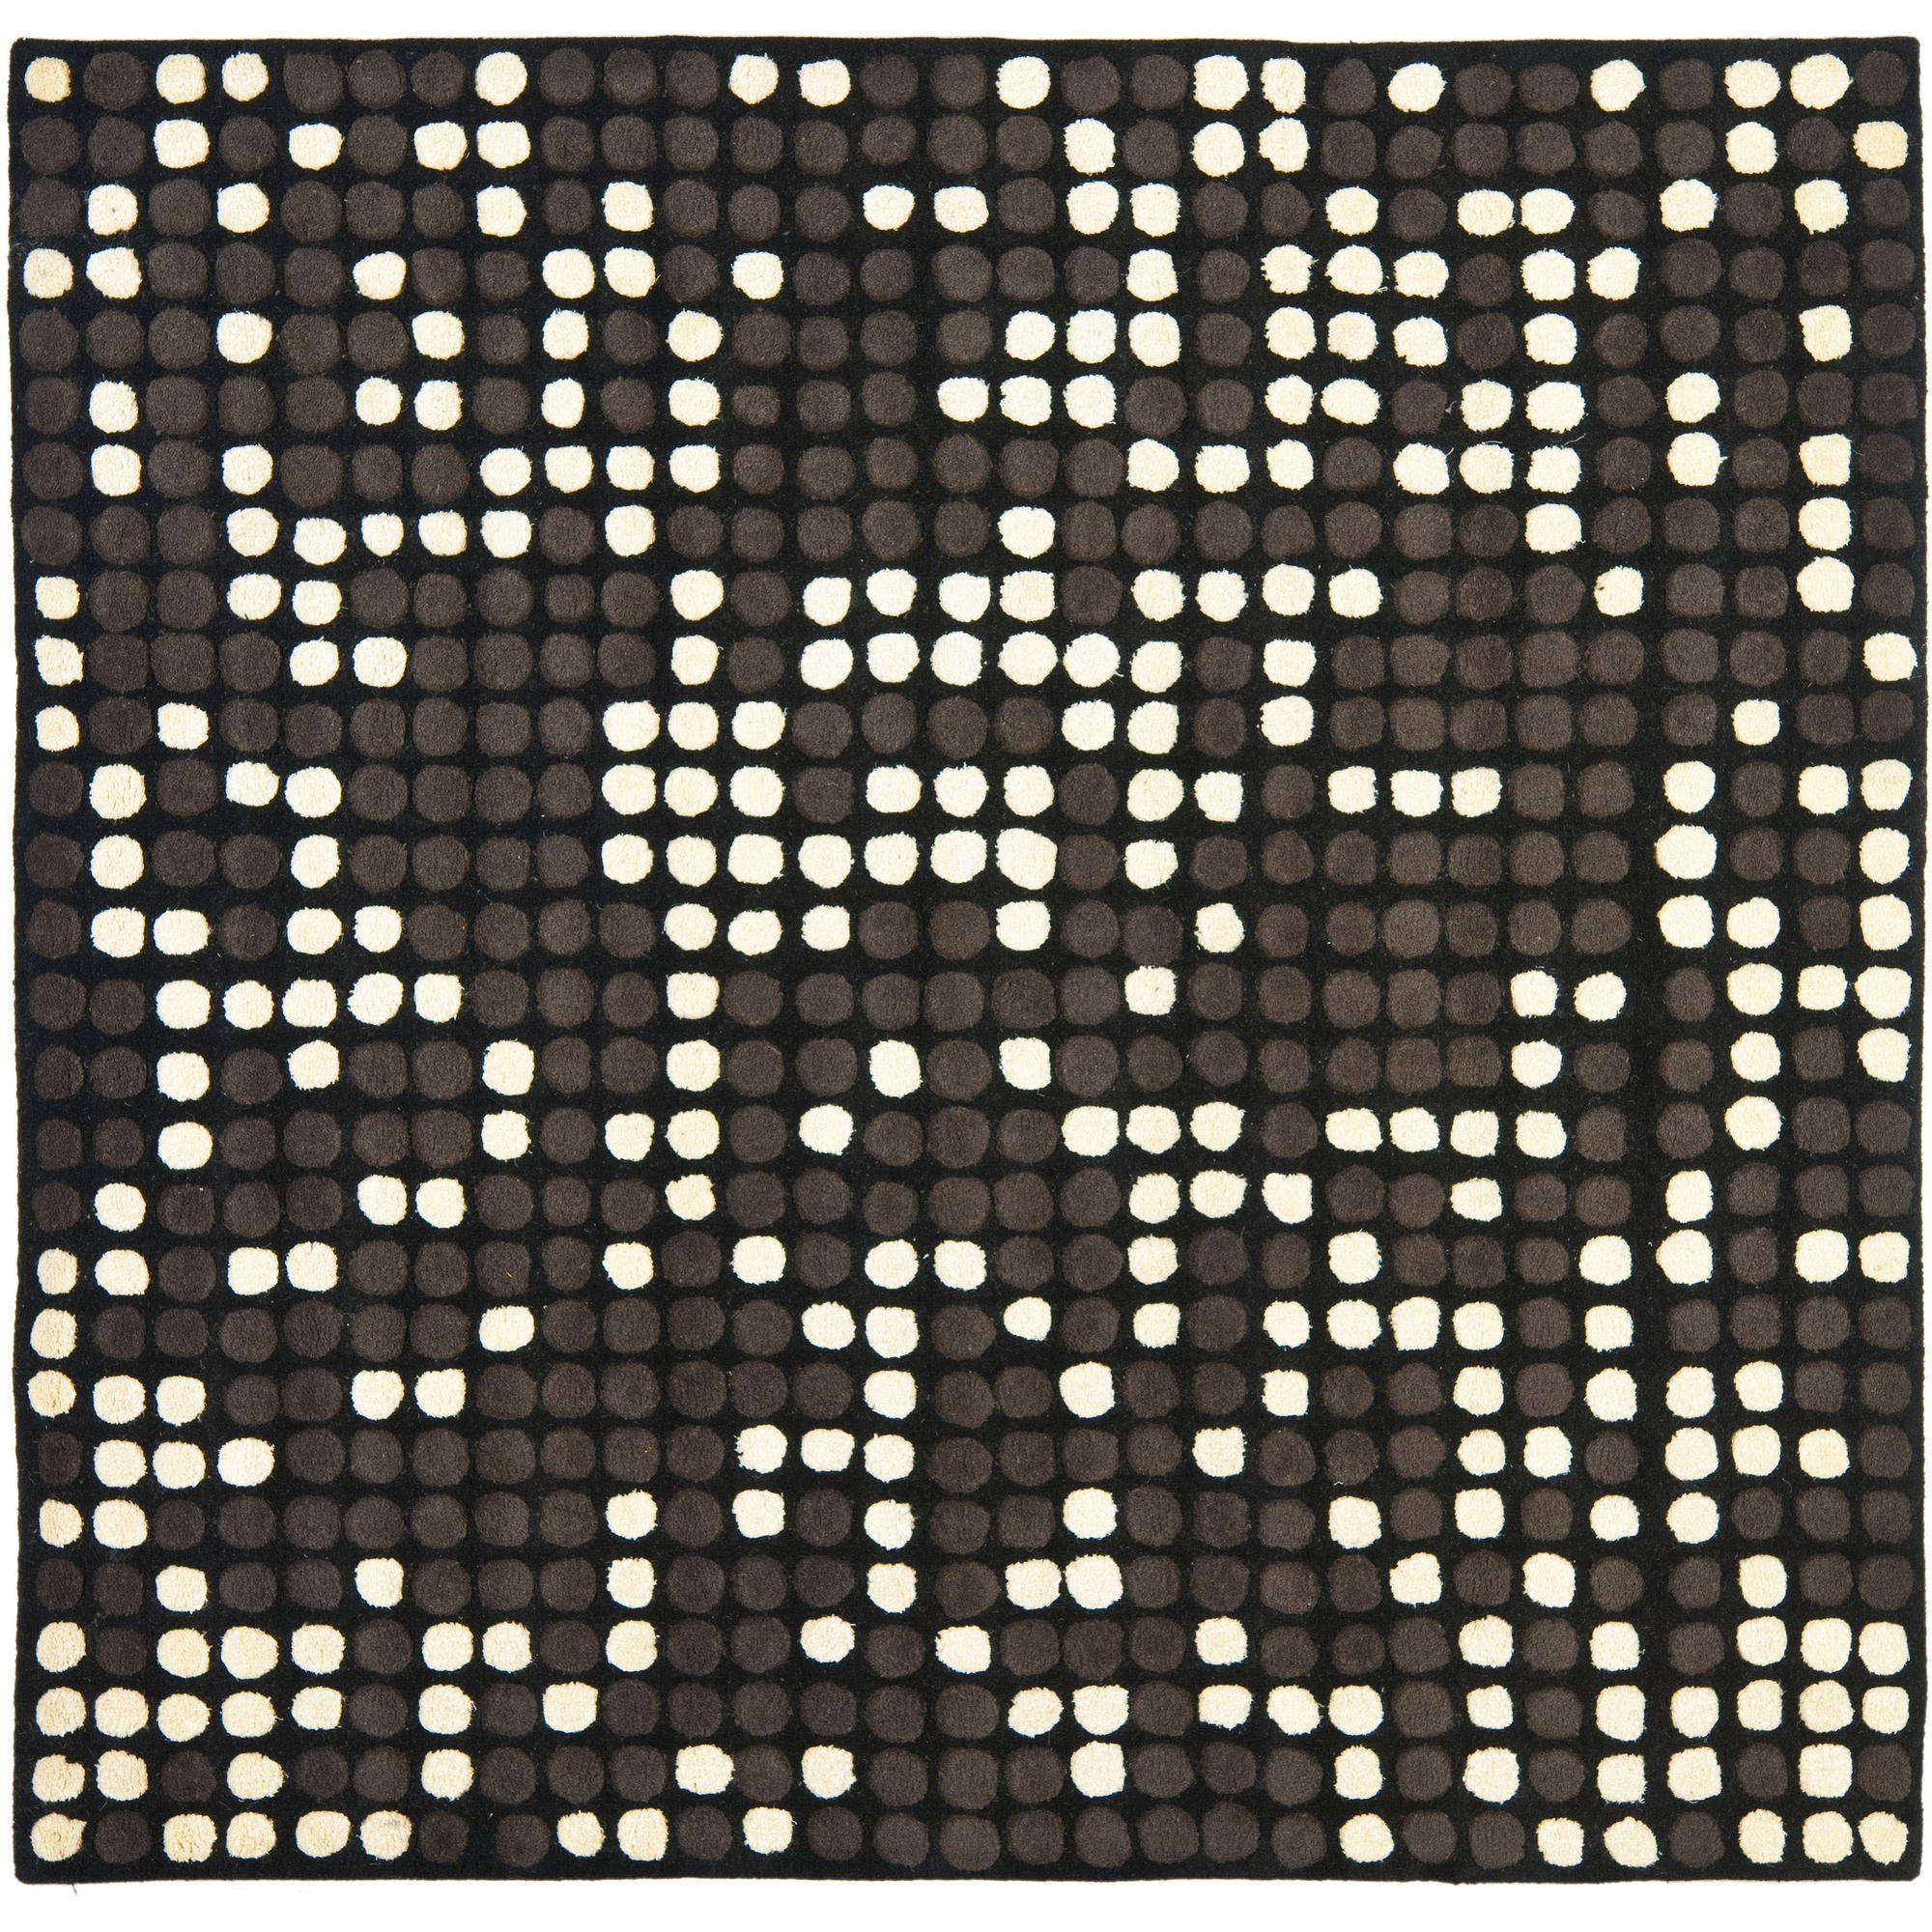 Safavieh Soho Ryan Wool Square Area Rug, Black/White, 6'